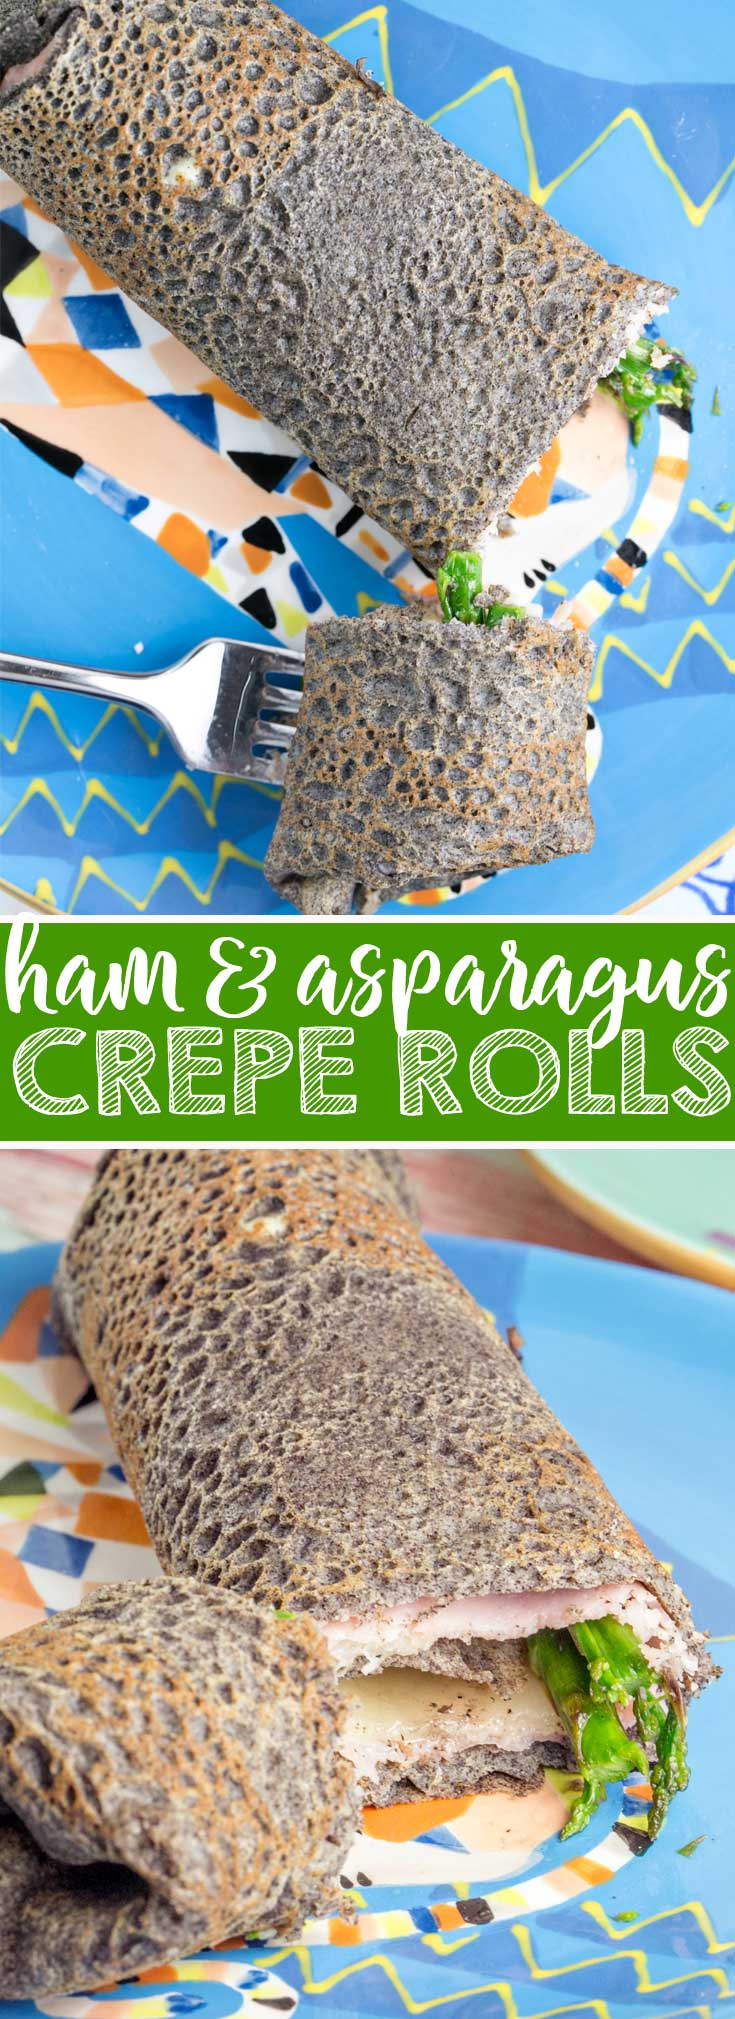 Ham and Asparagus Crepe Rolls: the perfect gluten-free spring brunch dish! {Bunsen Burner Bakery}